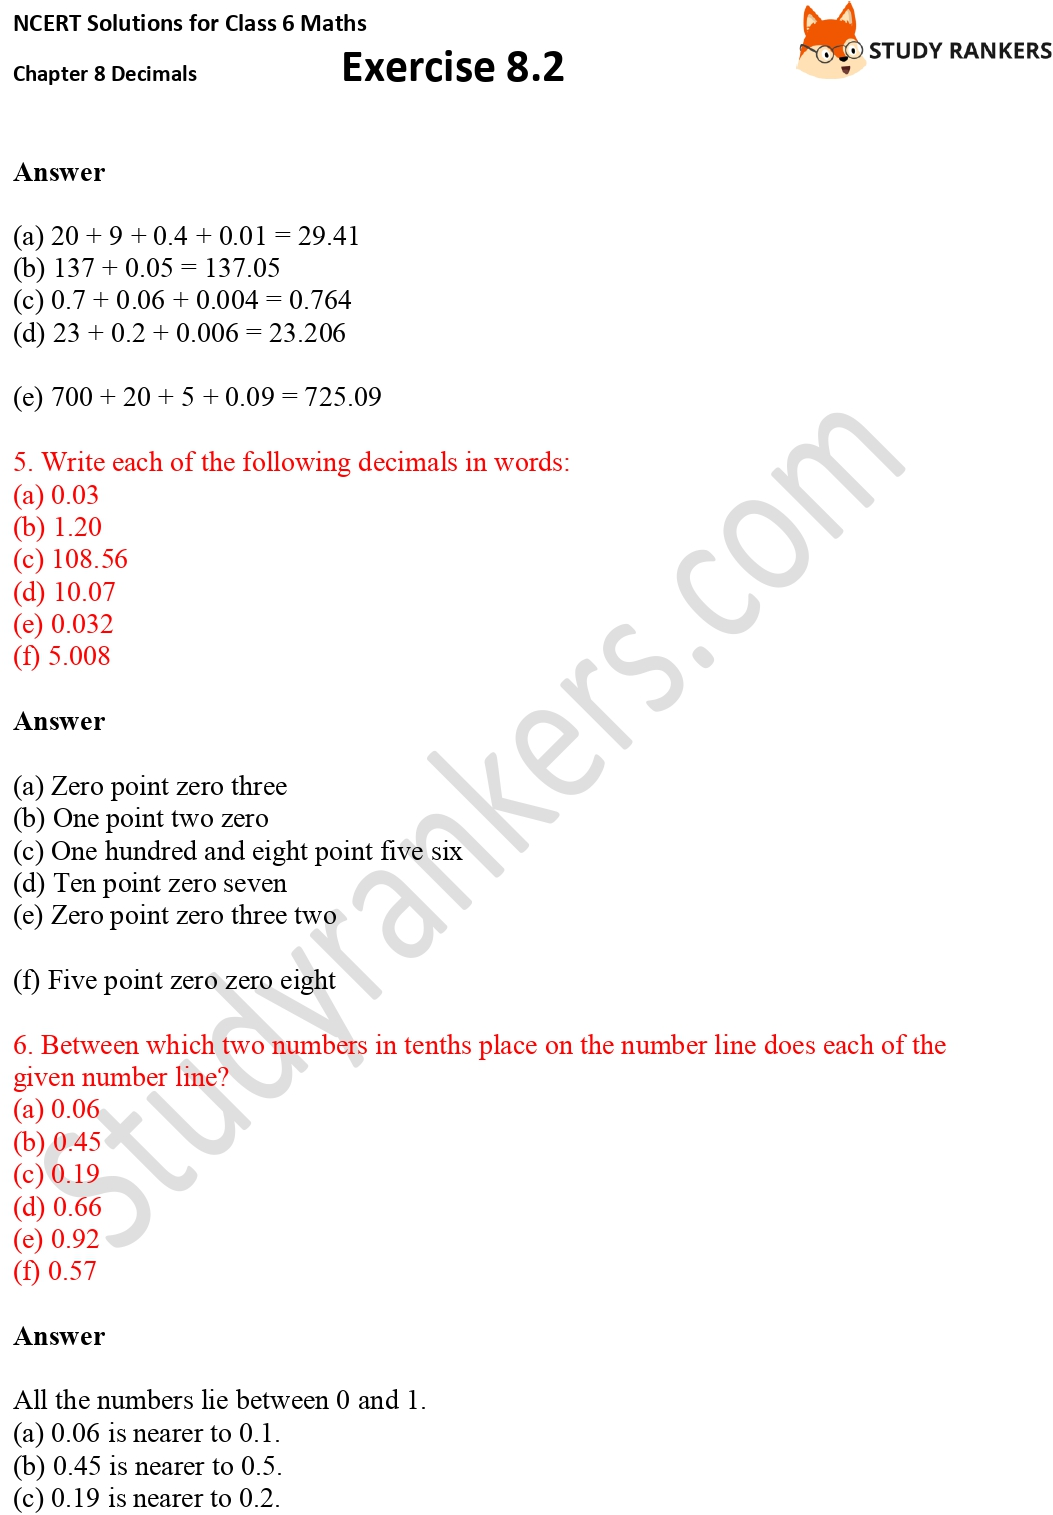 NCERT Solutions for Class 6 Maths Chapter 8 Decimals Exercise 8.2 Part 3